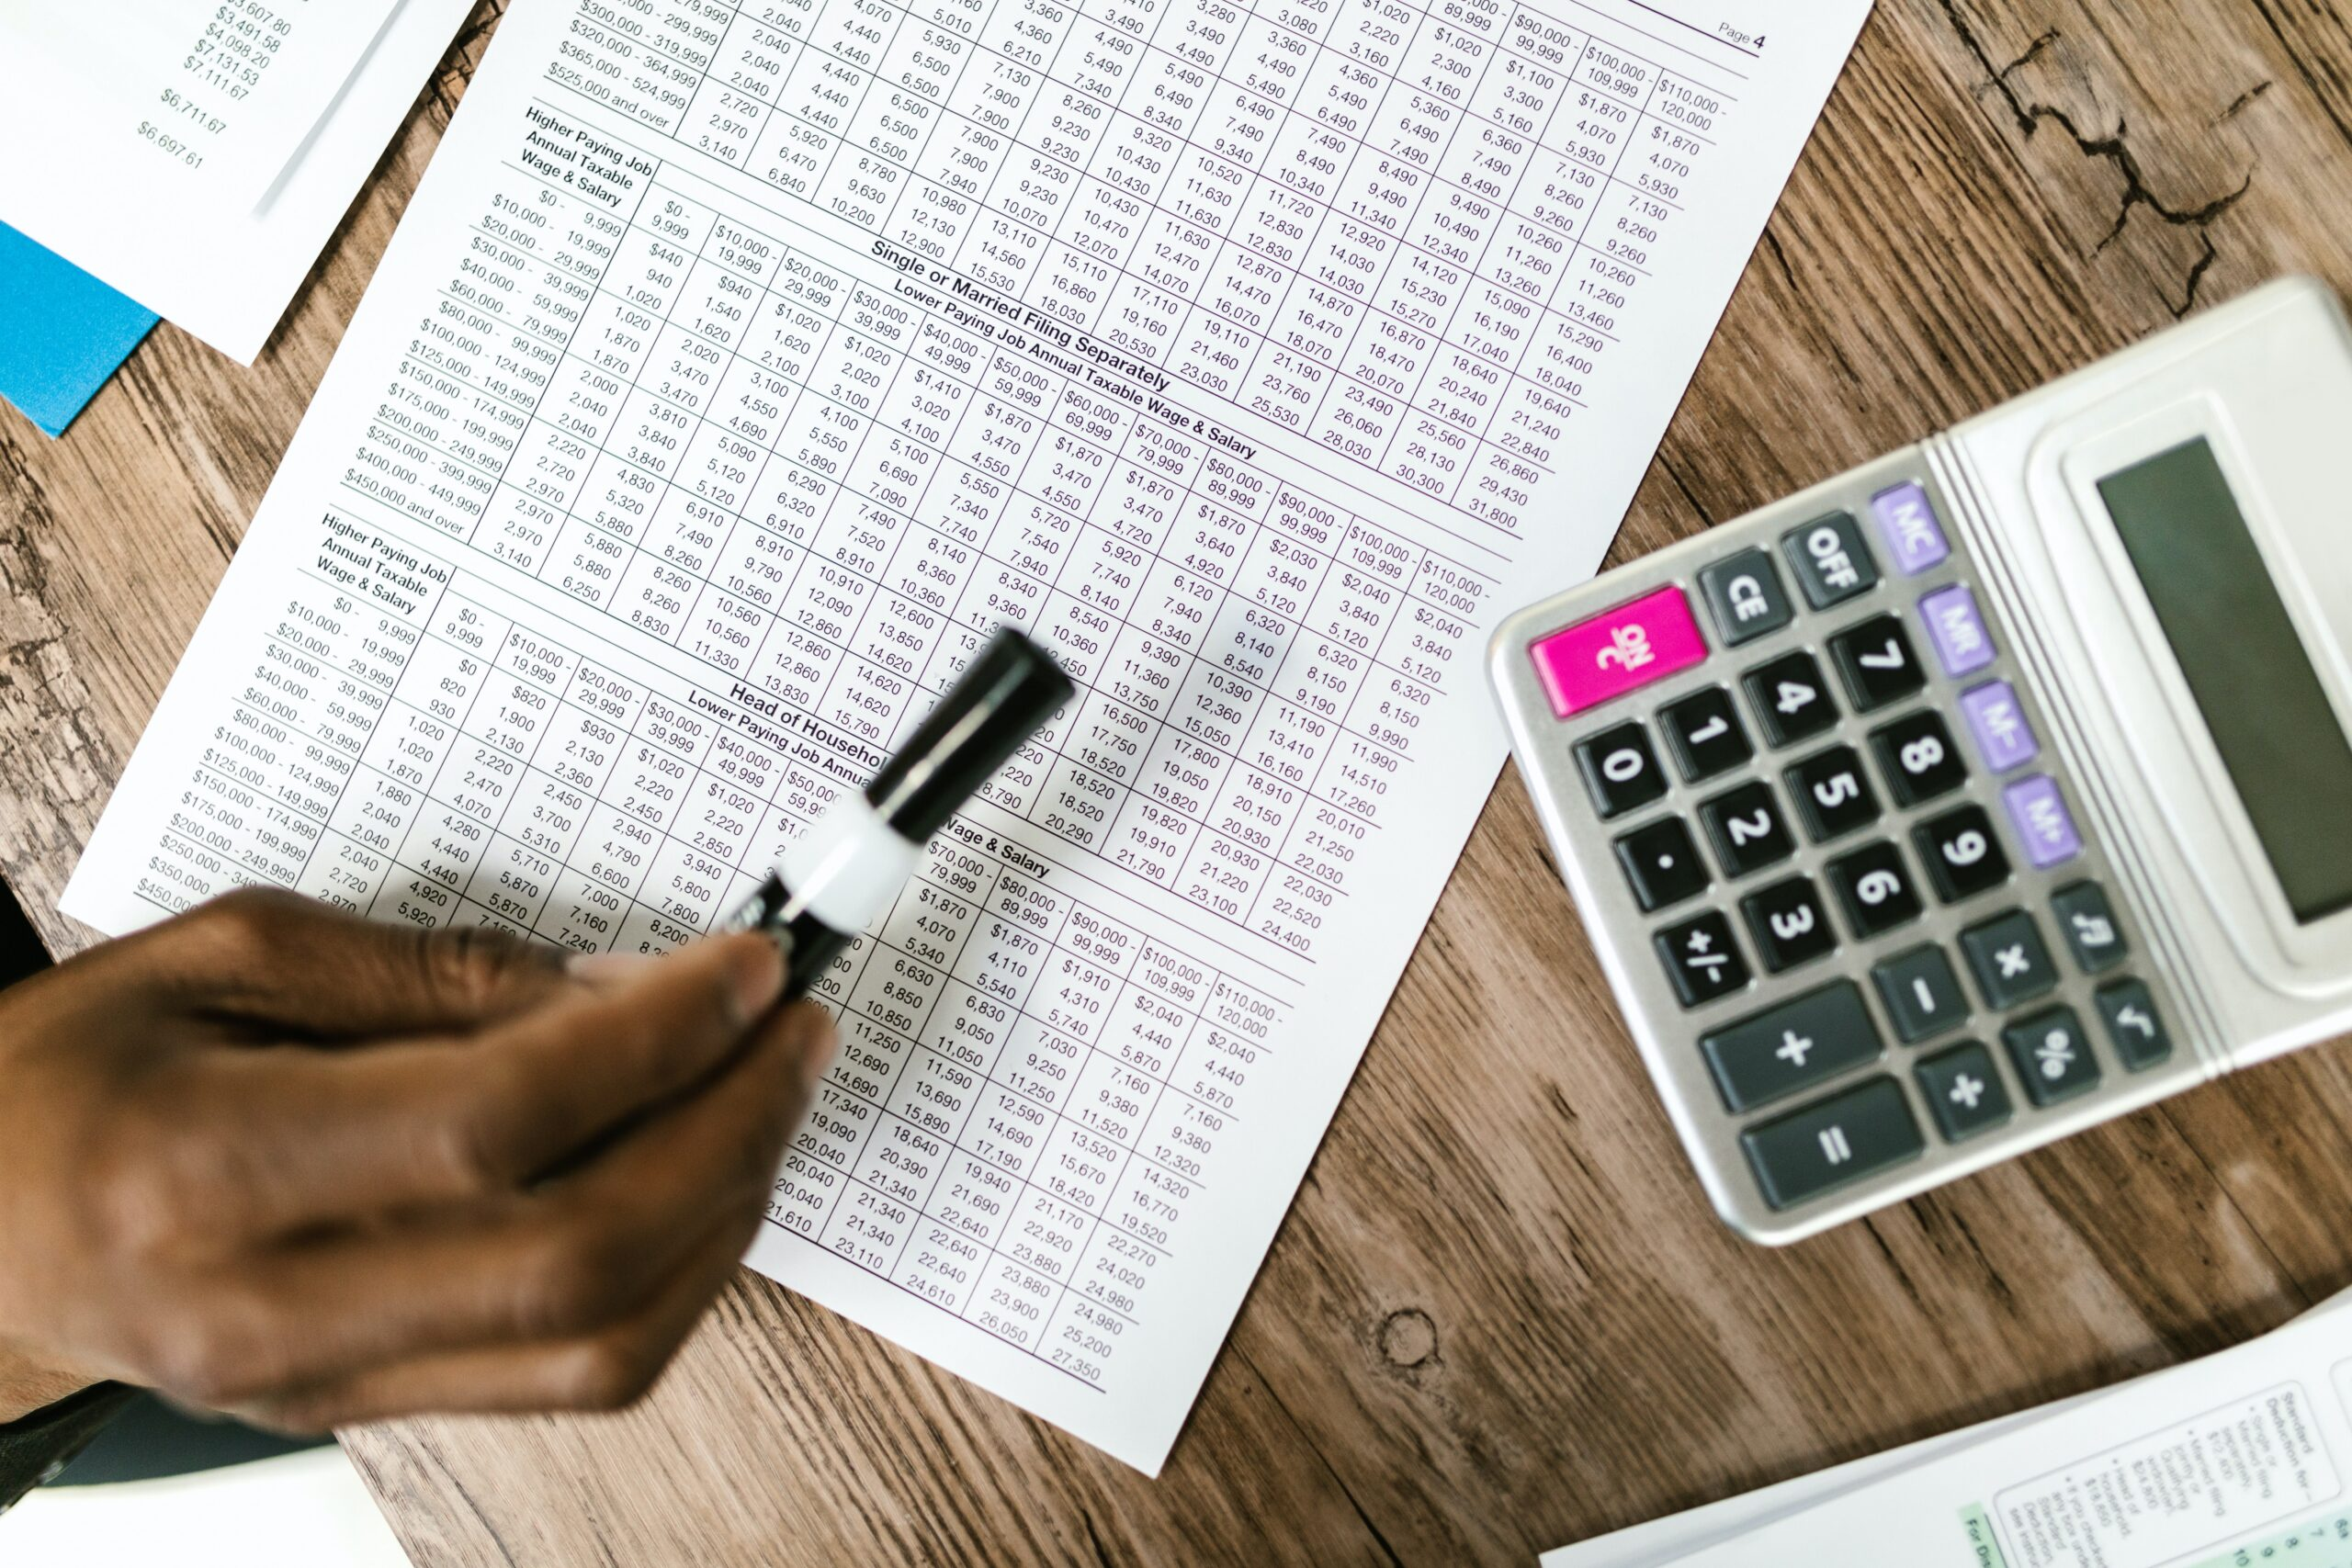 The Benefits of Up-to-date Accounting and Bookkeeping Records